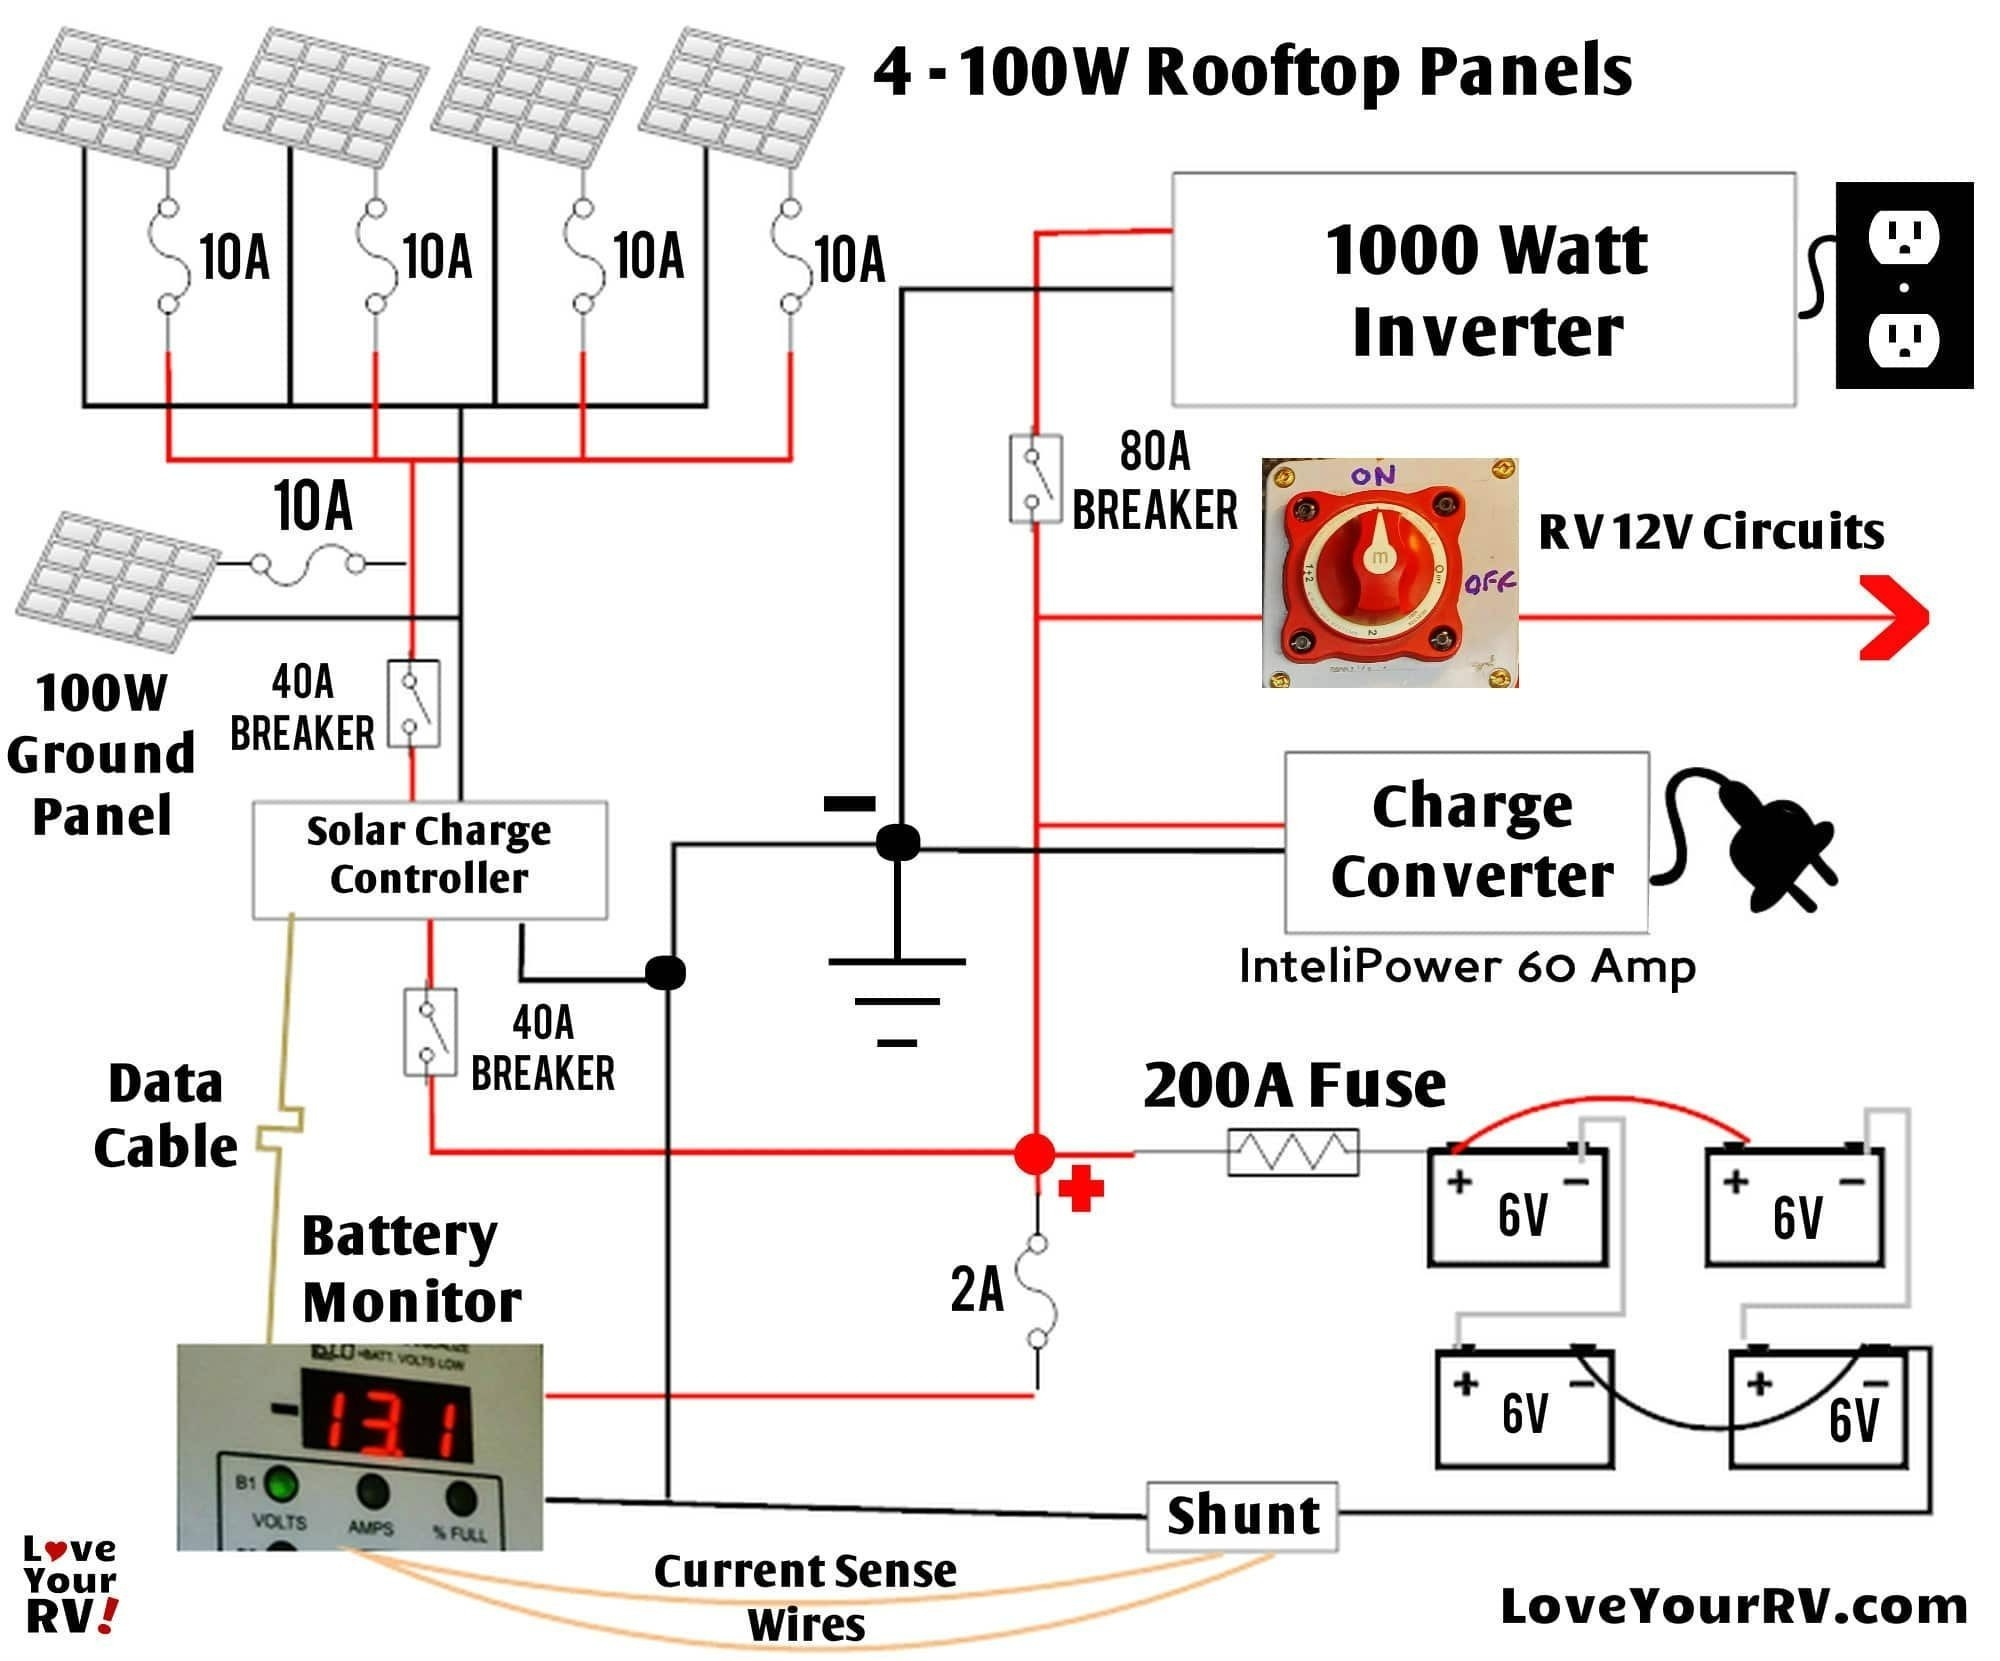 rv solar wiring diagram Download-Solar Panel Wiring Diagram Example Save Rv solar Wiring Diagram Detailed Look at Our Diy Rv 17-b